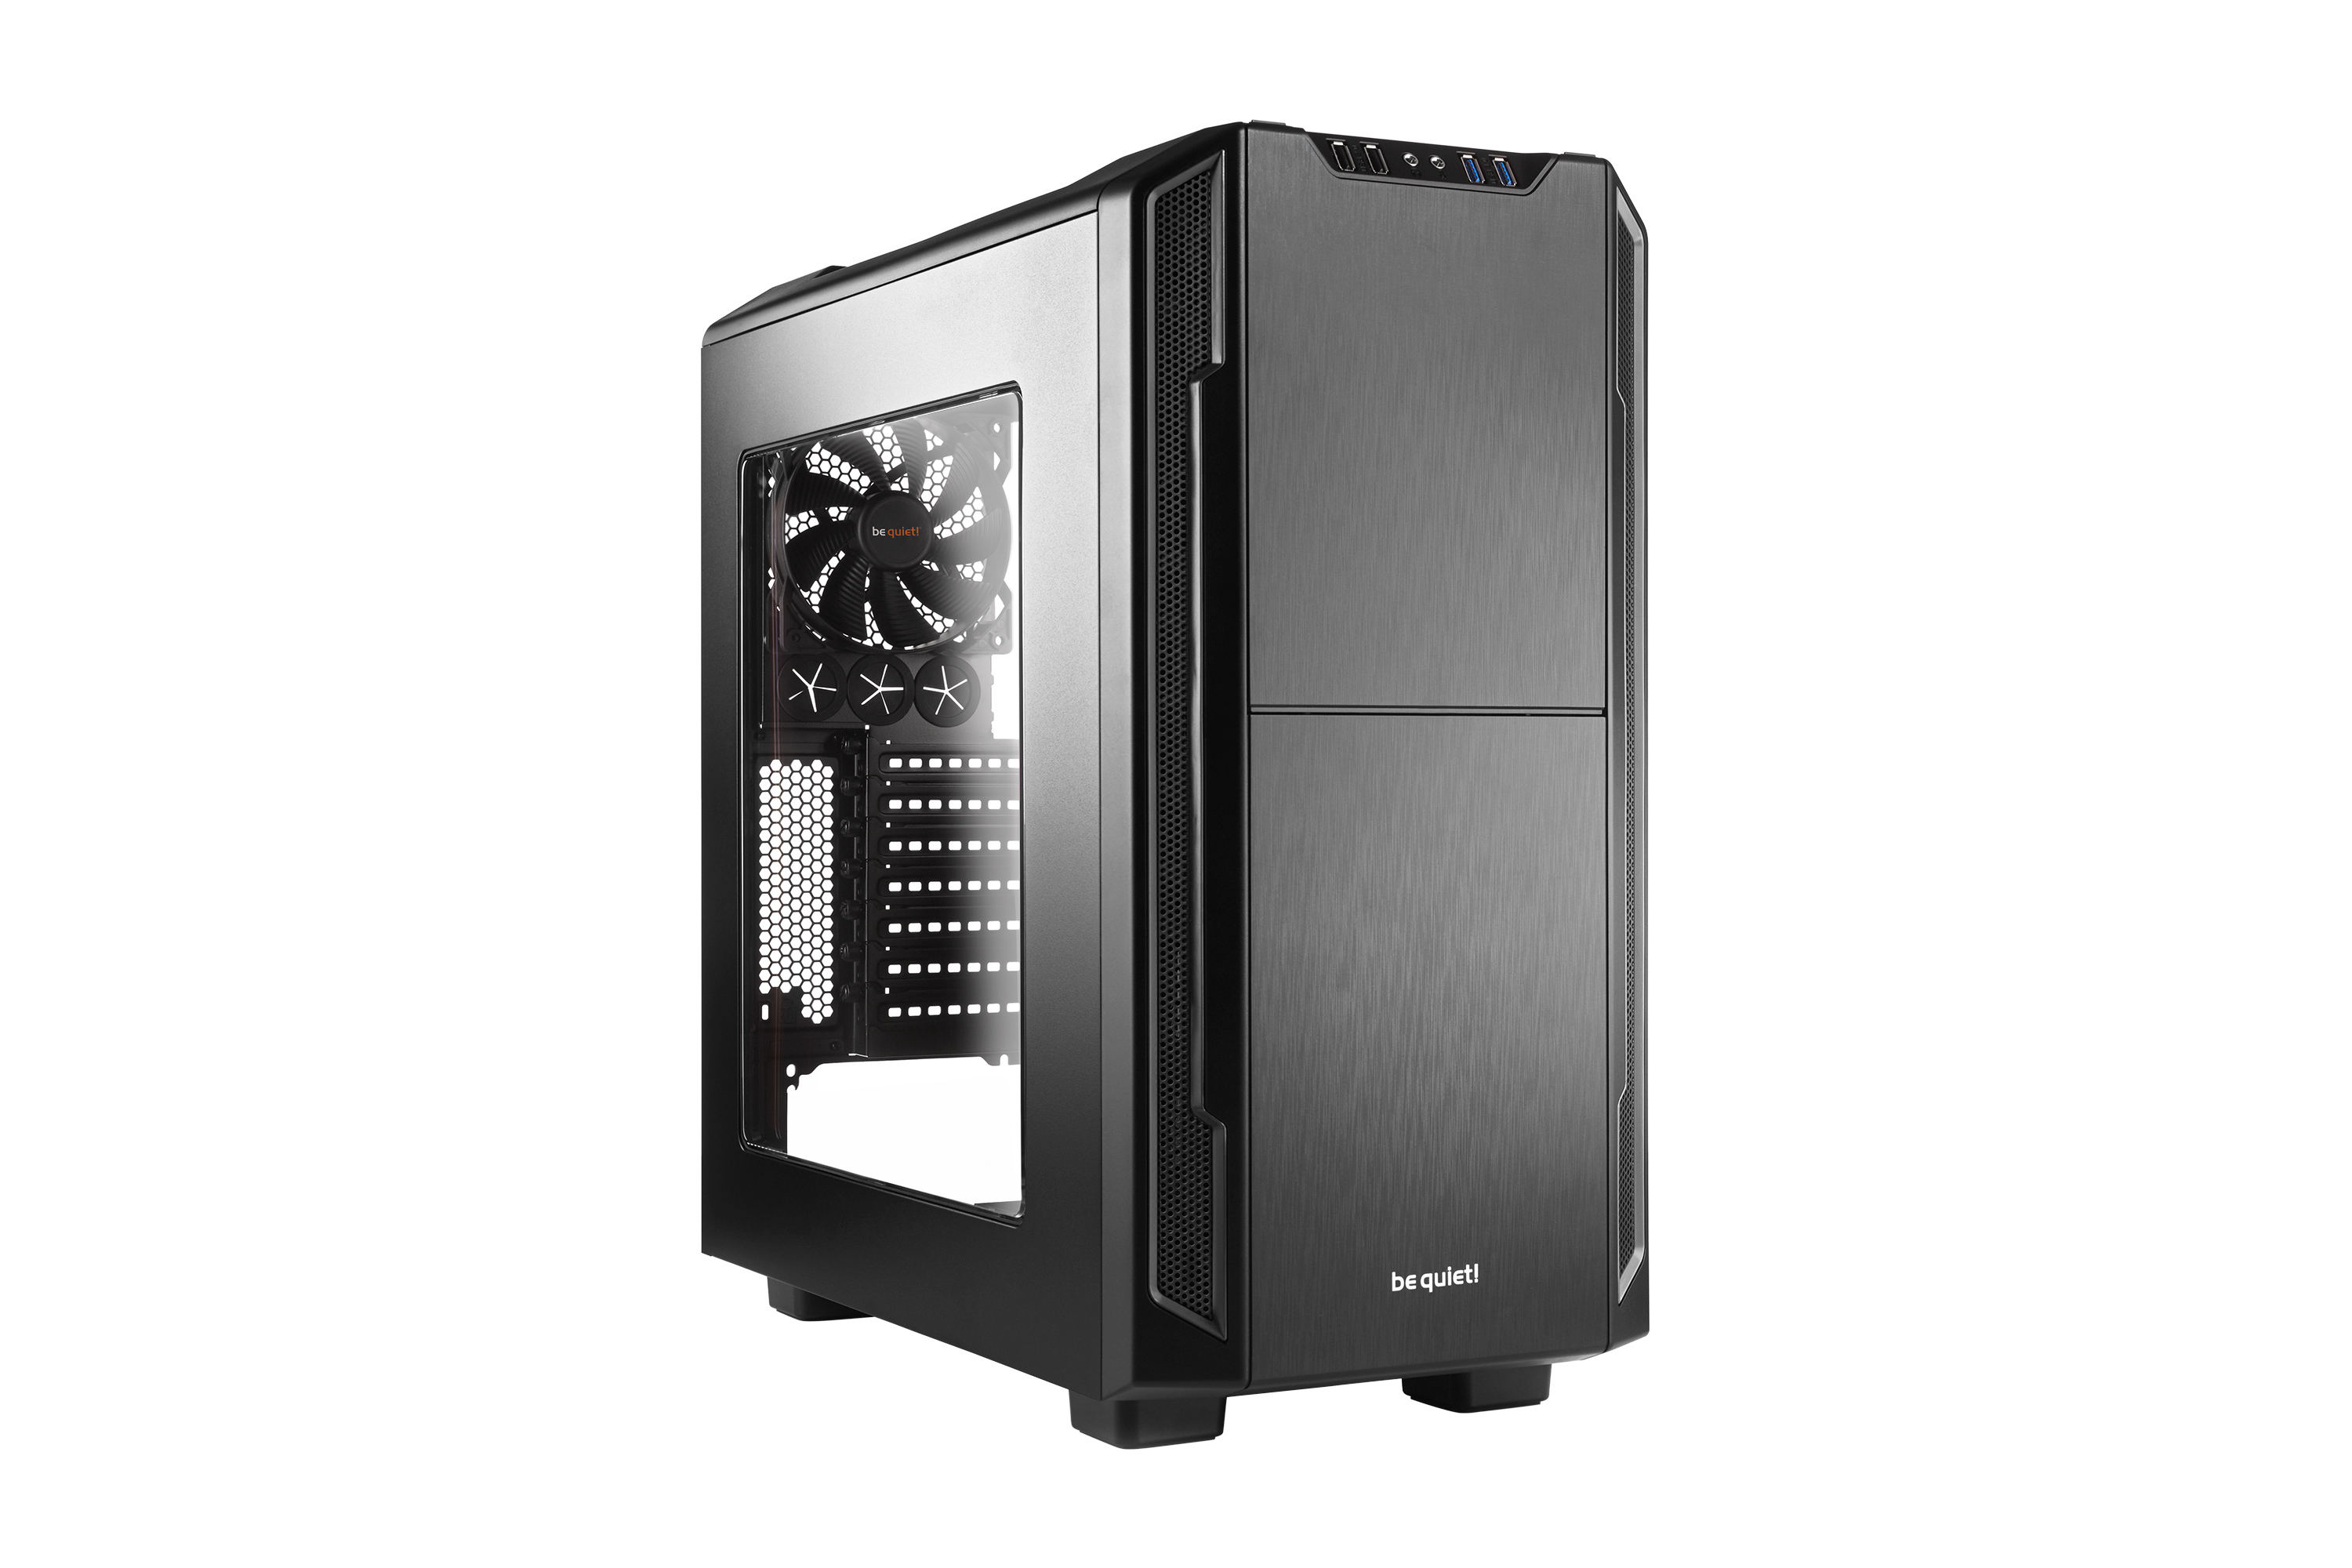 be quiet! Silent Base 600 Window Black, 495 x 230 x 493, IO-panel 2x USB 3.0, 2x USB 2.0, HD Audio, 3x 5,25, 3x 3,5, 3x 2,5, inc 1x 140 mm en 1x 120 mm fan, dual air channel cooling,